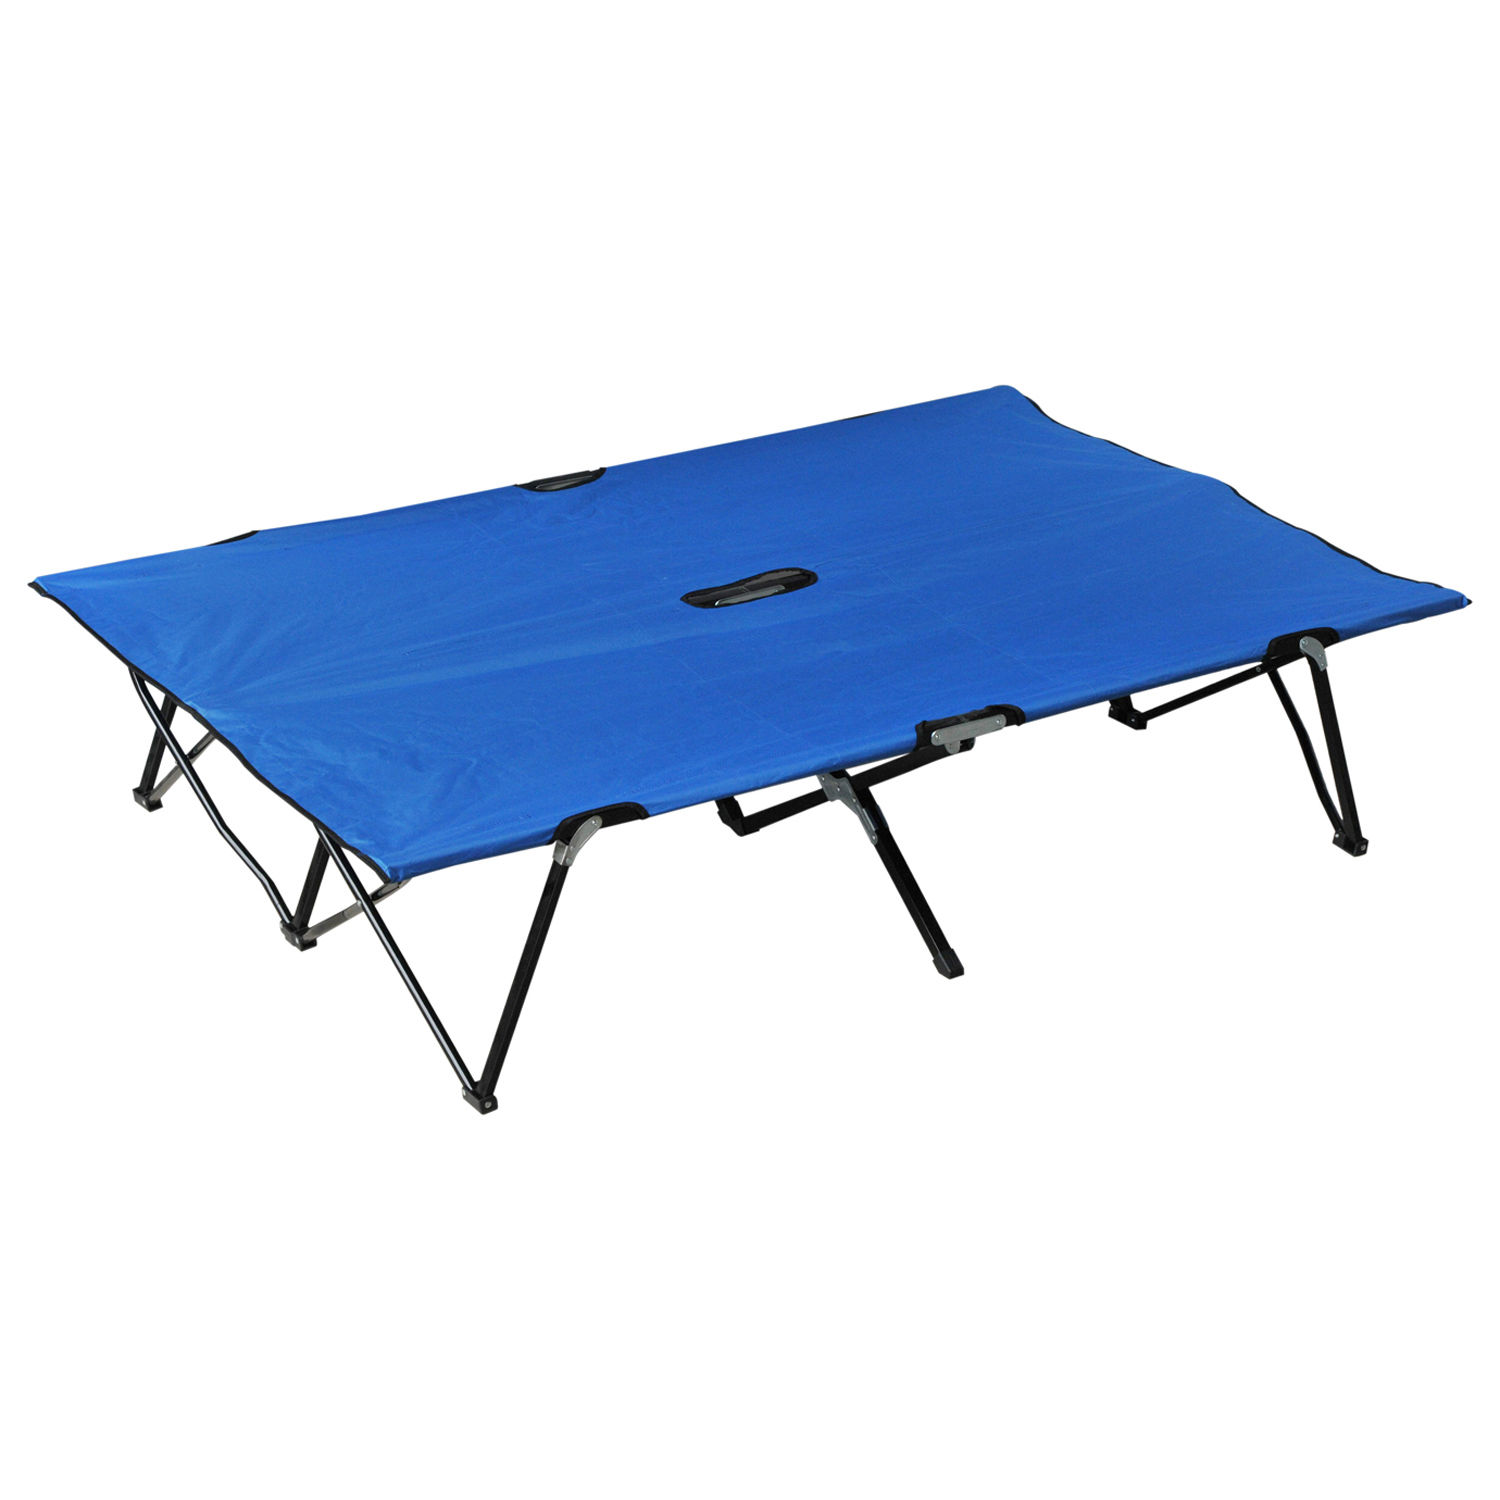 "Outsunny 76"" Two Person Double Wide Folding Camping Cot Blue by Aosom LLC"